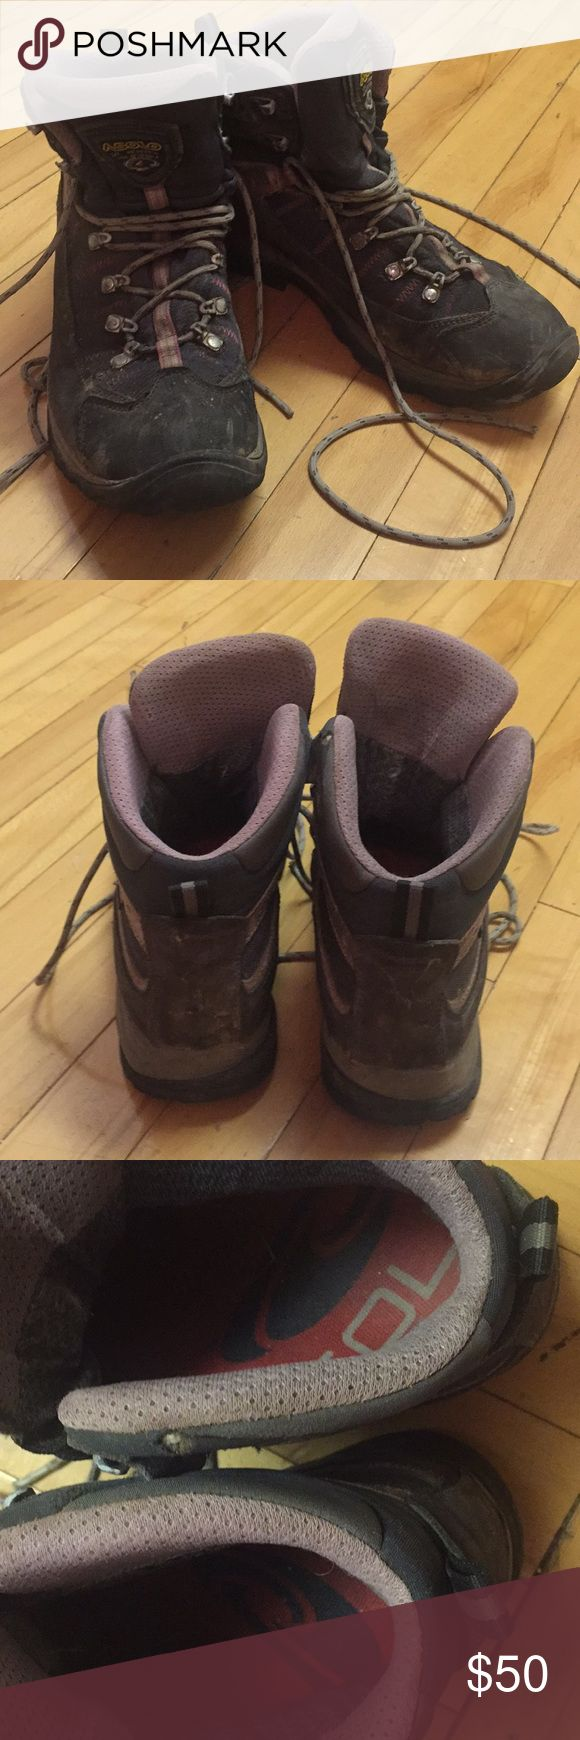 Asolo hiking boots. Size 10. Dirty/ in good shape These boots have seen a good life on a portion of the appalachian trail but turned out to just be the wrong fit for my feet. They have vibram soles. Still plenty of tread. Pretty water resistant. Sole inserts. Asolo Shoes Athletic Shoes